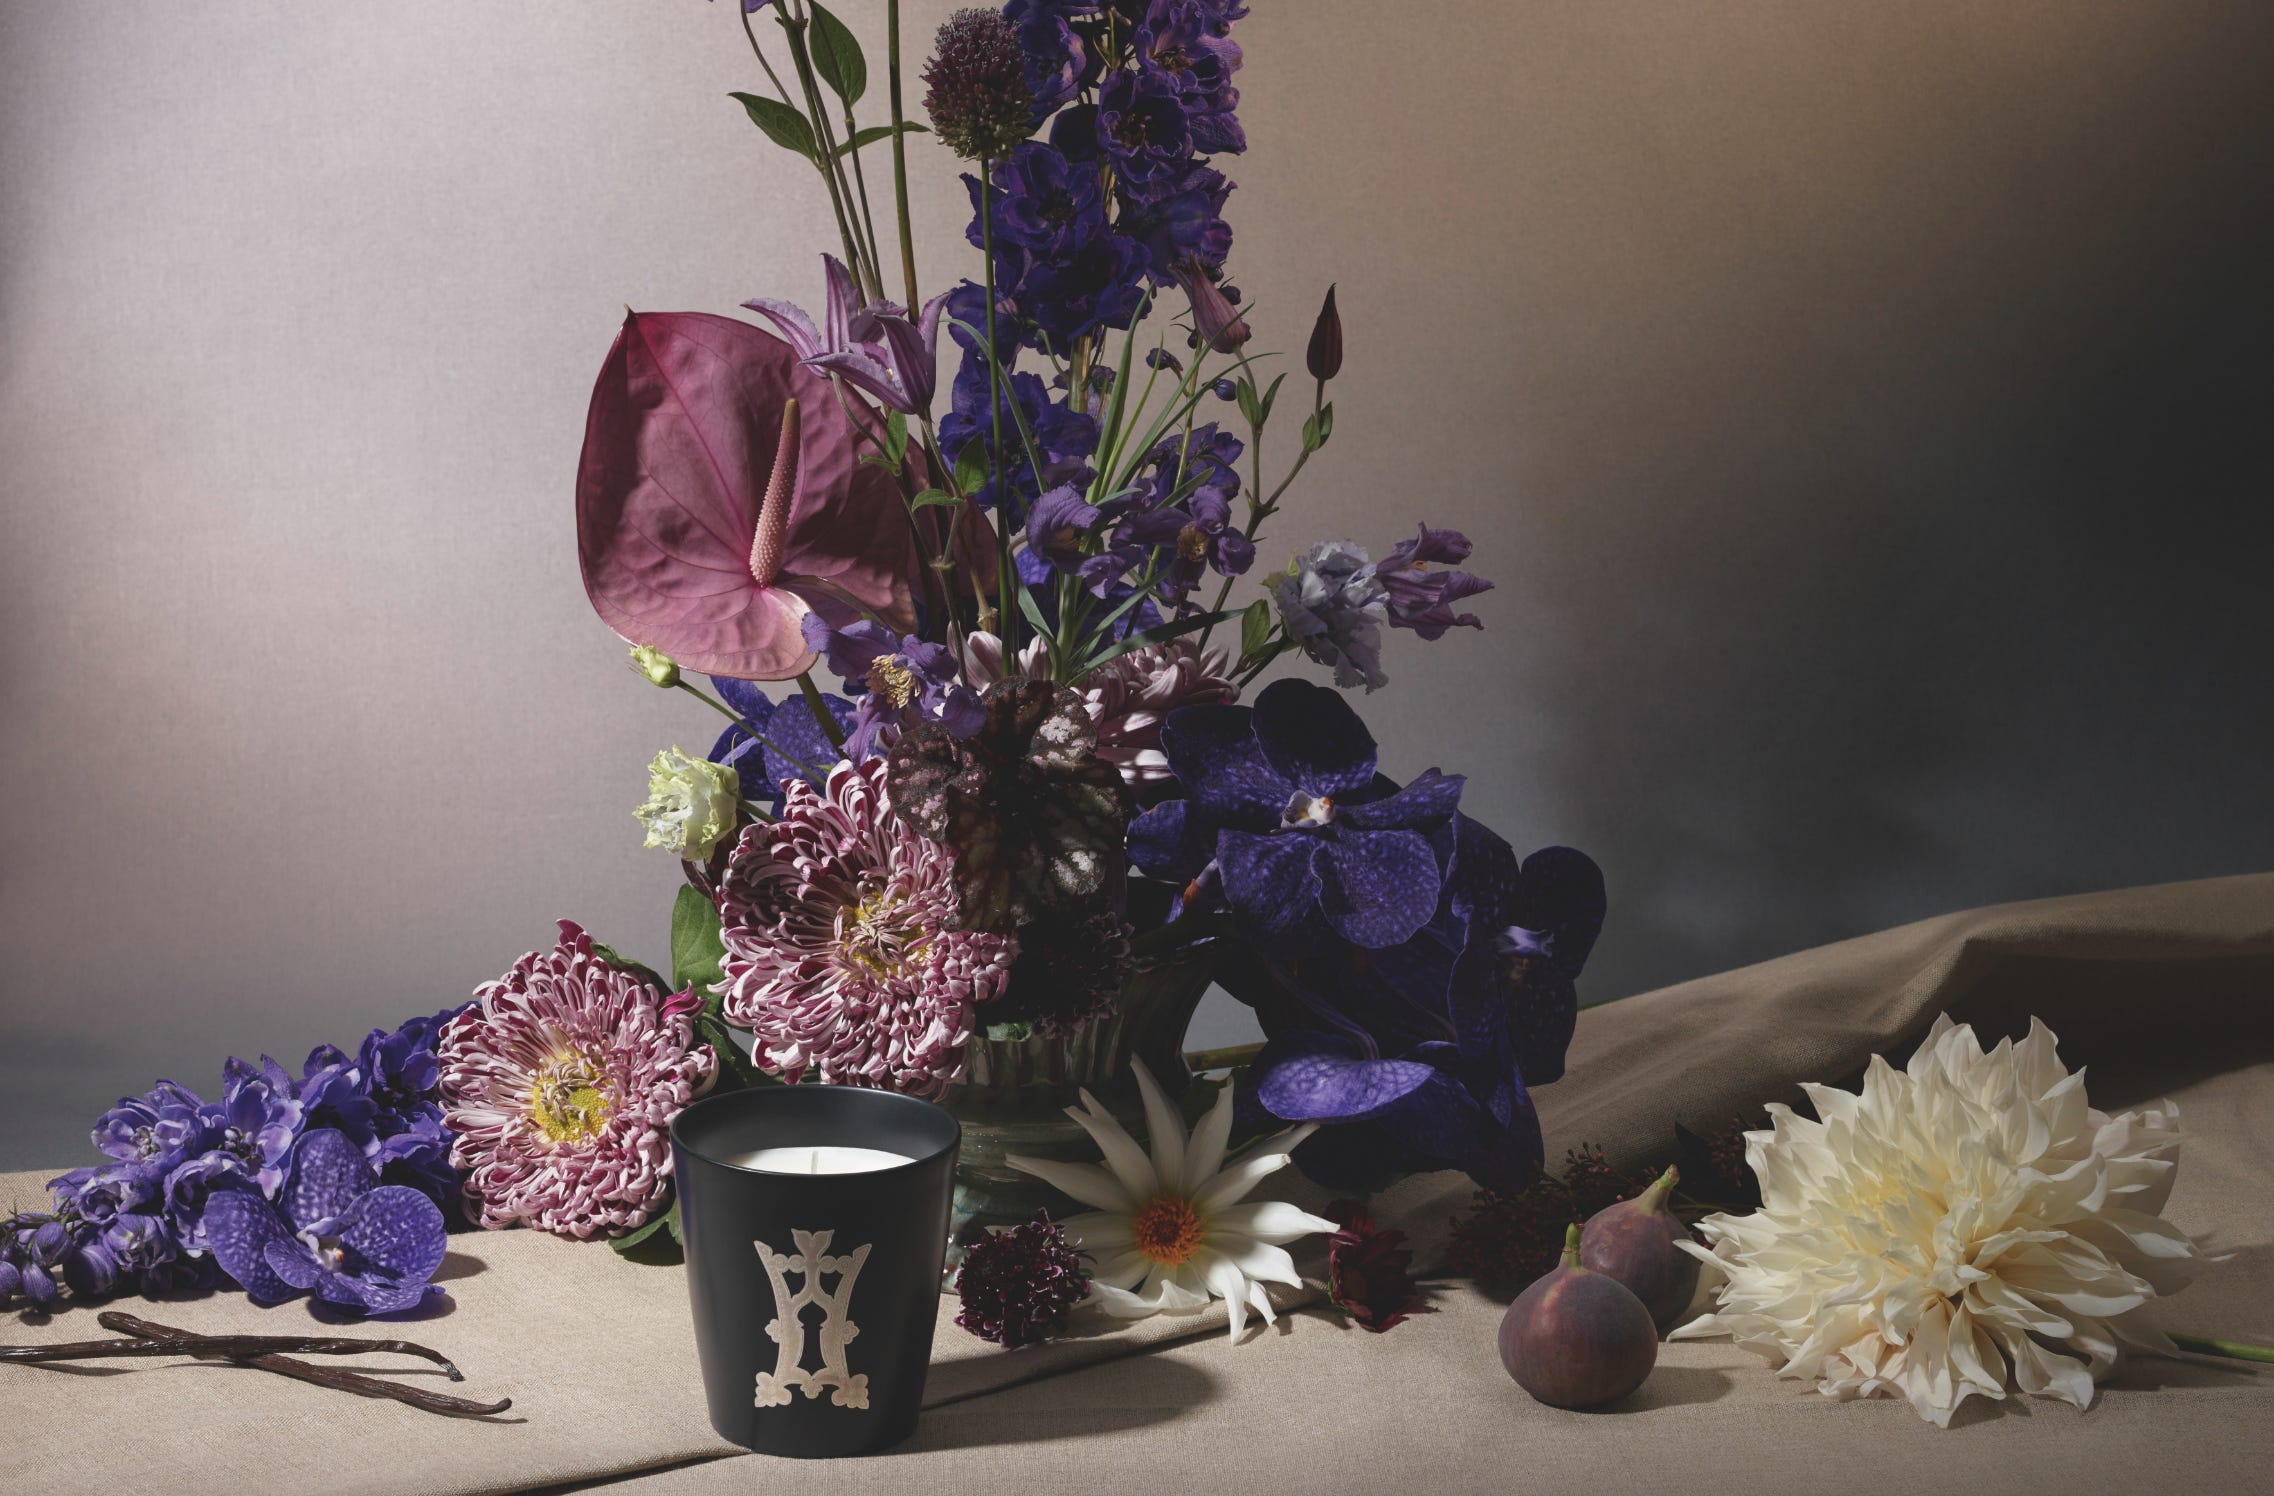 Clair de Lune candle in front of a bouquet of purple and pink flowers